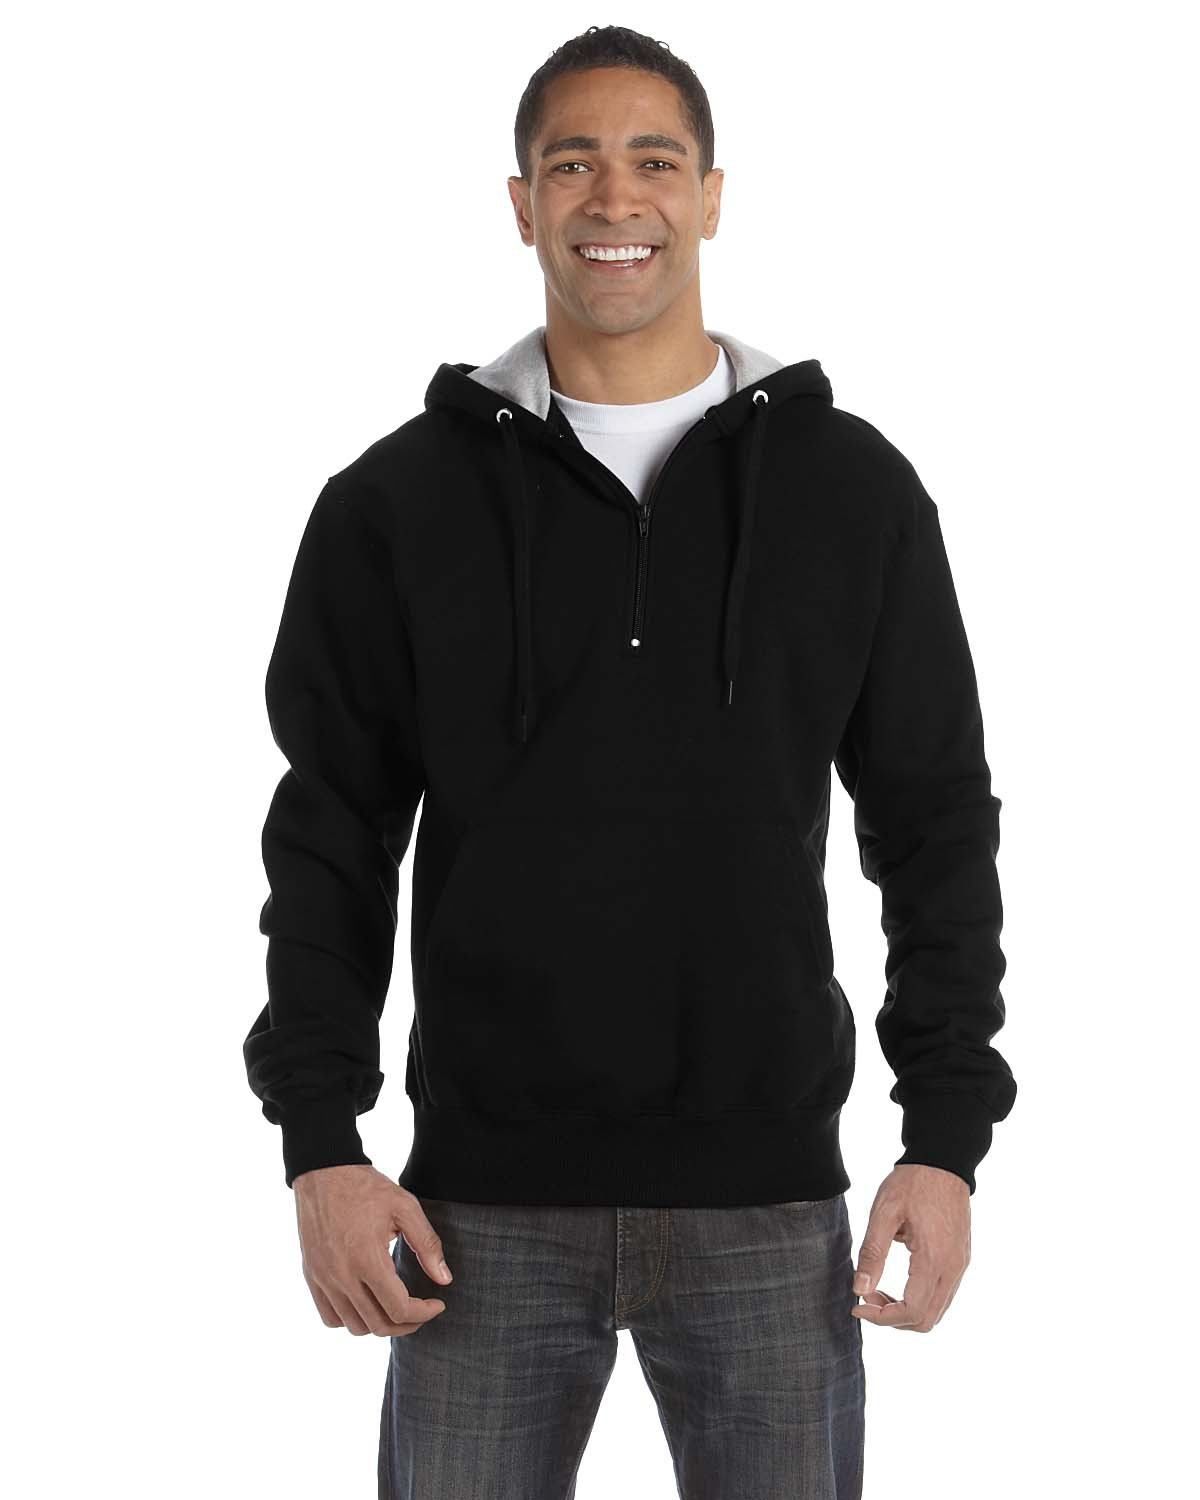 Zip Hooded Sweatshirts Wholesale 96